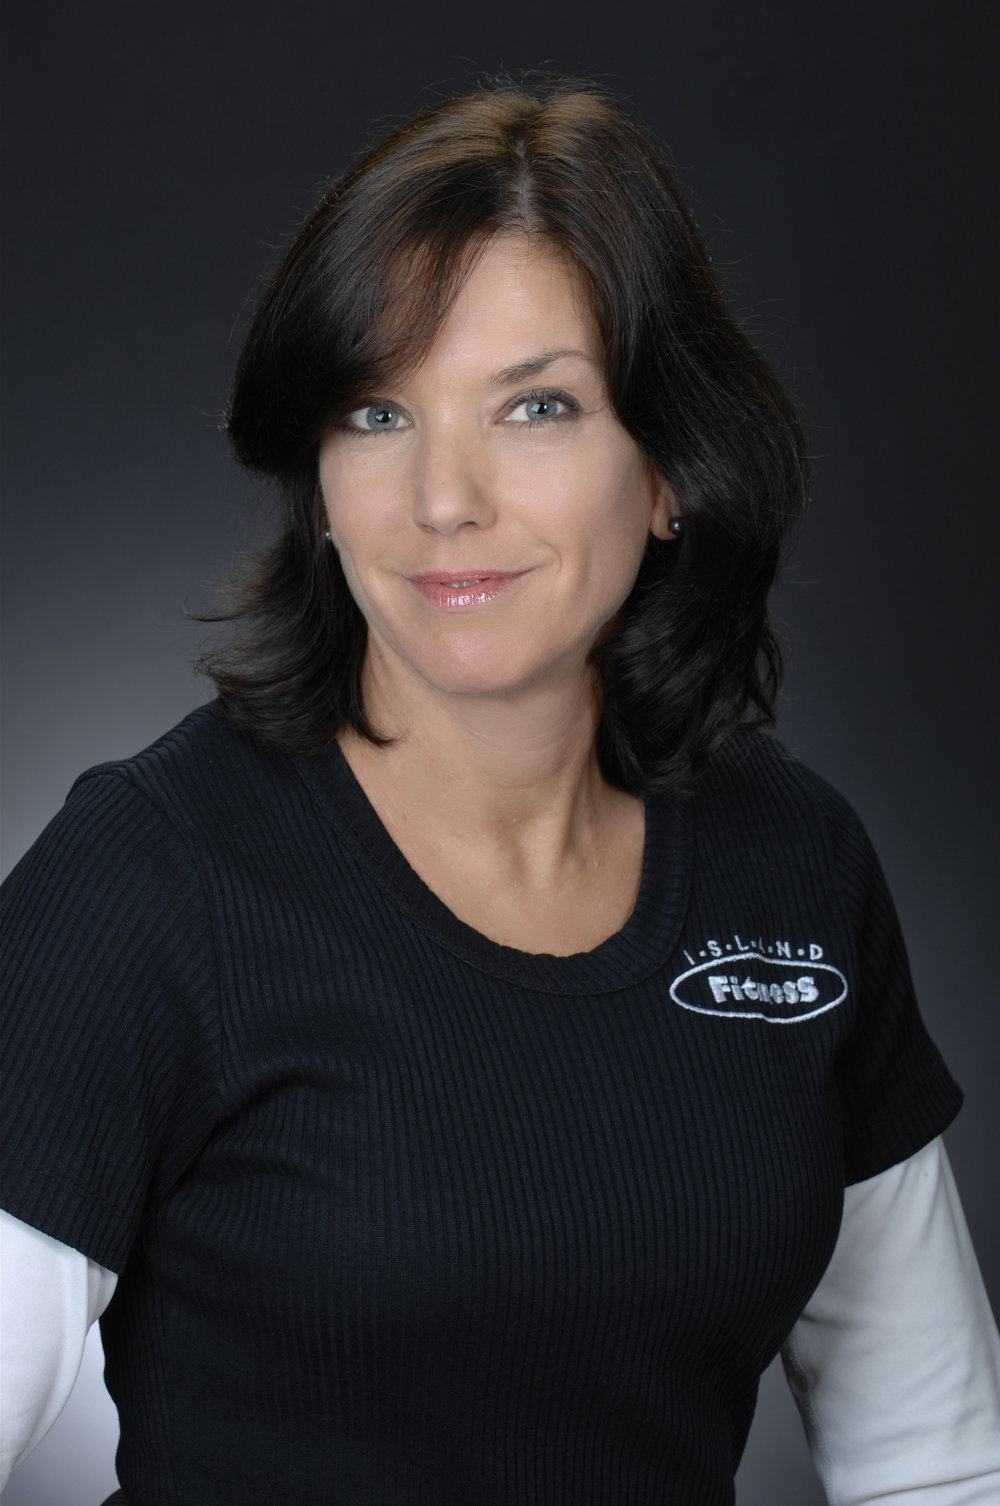 DIANE PETERSON | Specialist Trainer